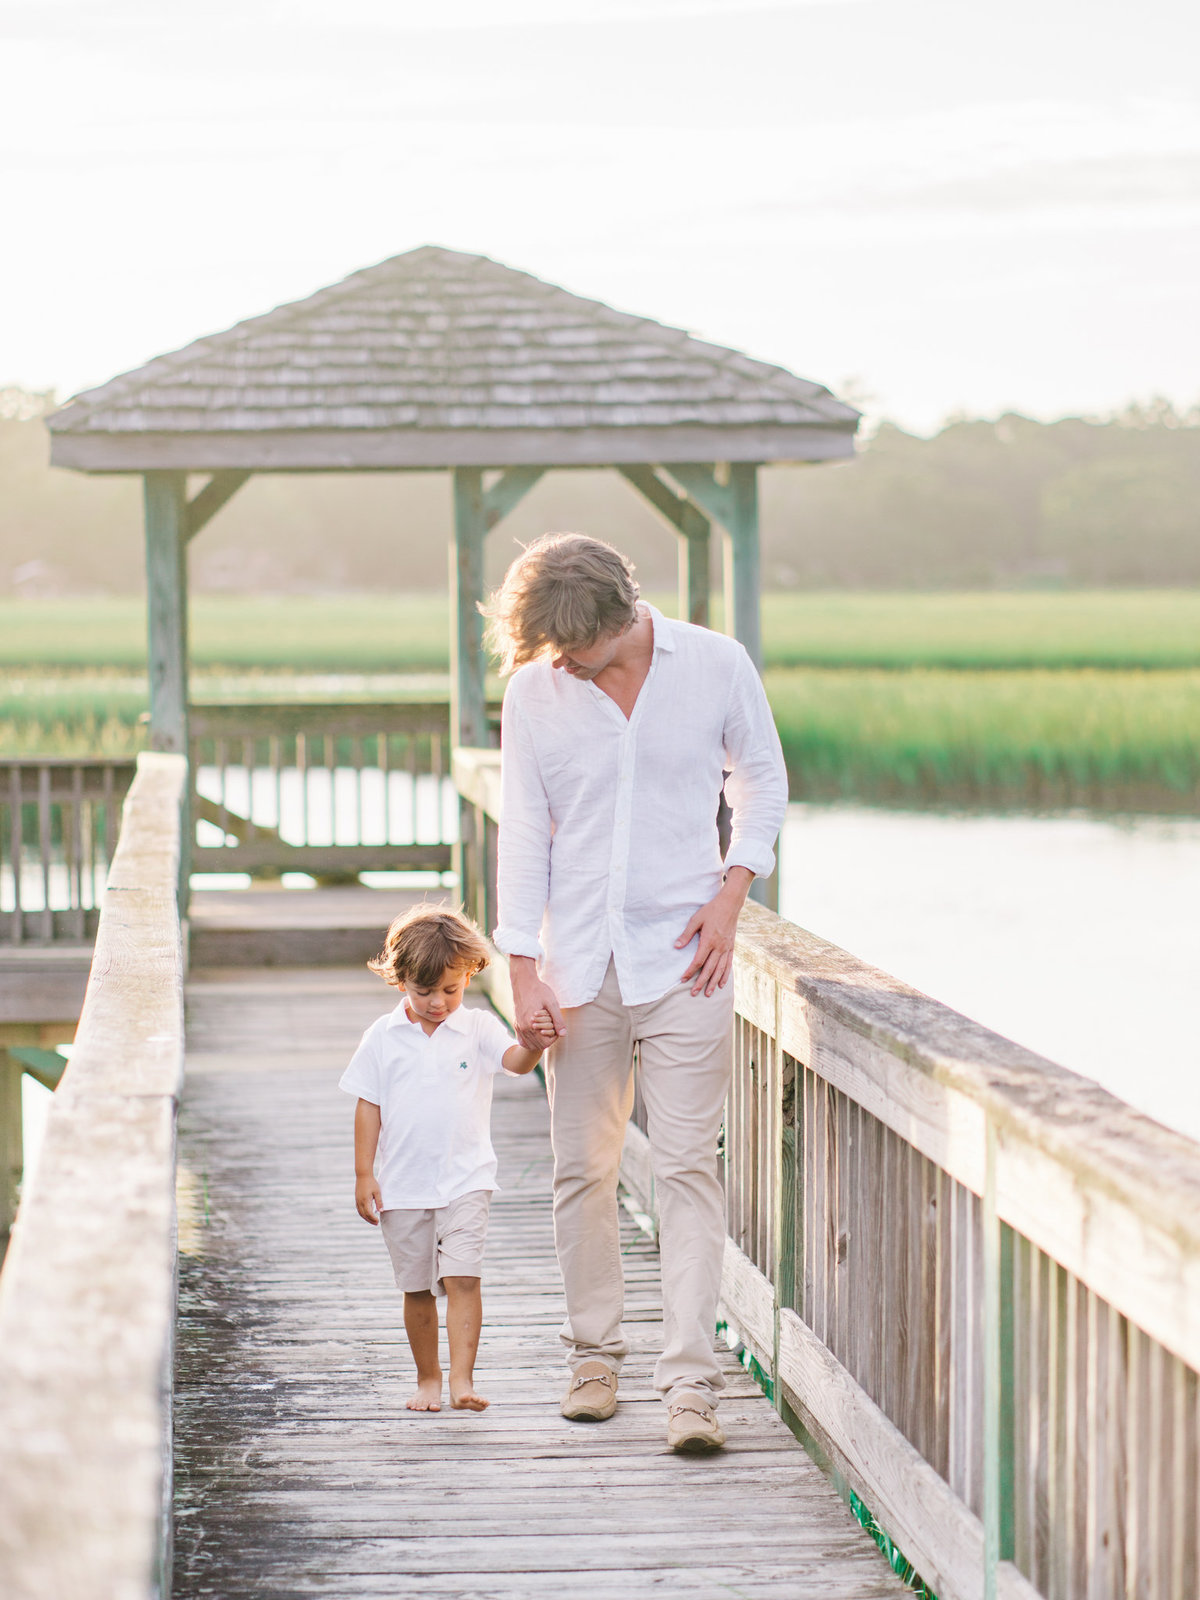 Pawleys Island Family Photographer - Family Photos in Pawleys Island by Pasha Belman